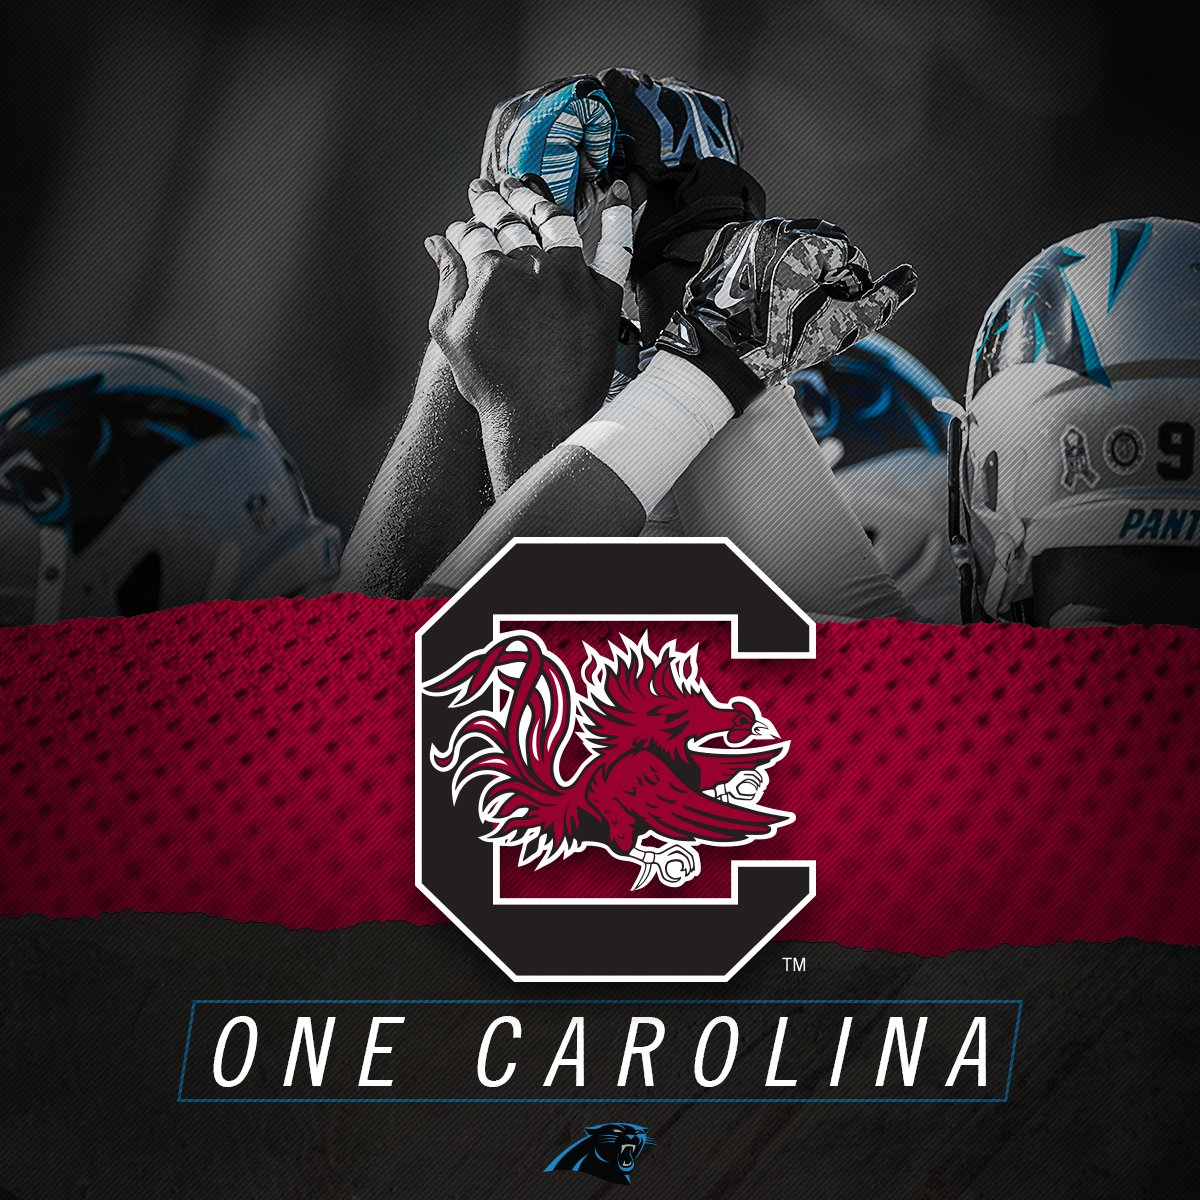 Good luck, @Panthers!! #KeepPounding  #OneCarolina #Gamecocks https://t.co/Zt10qzGxHo